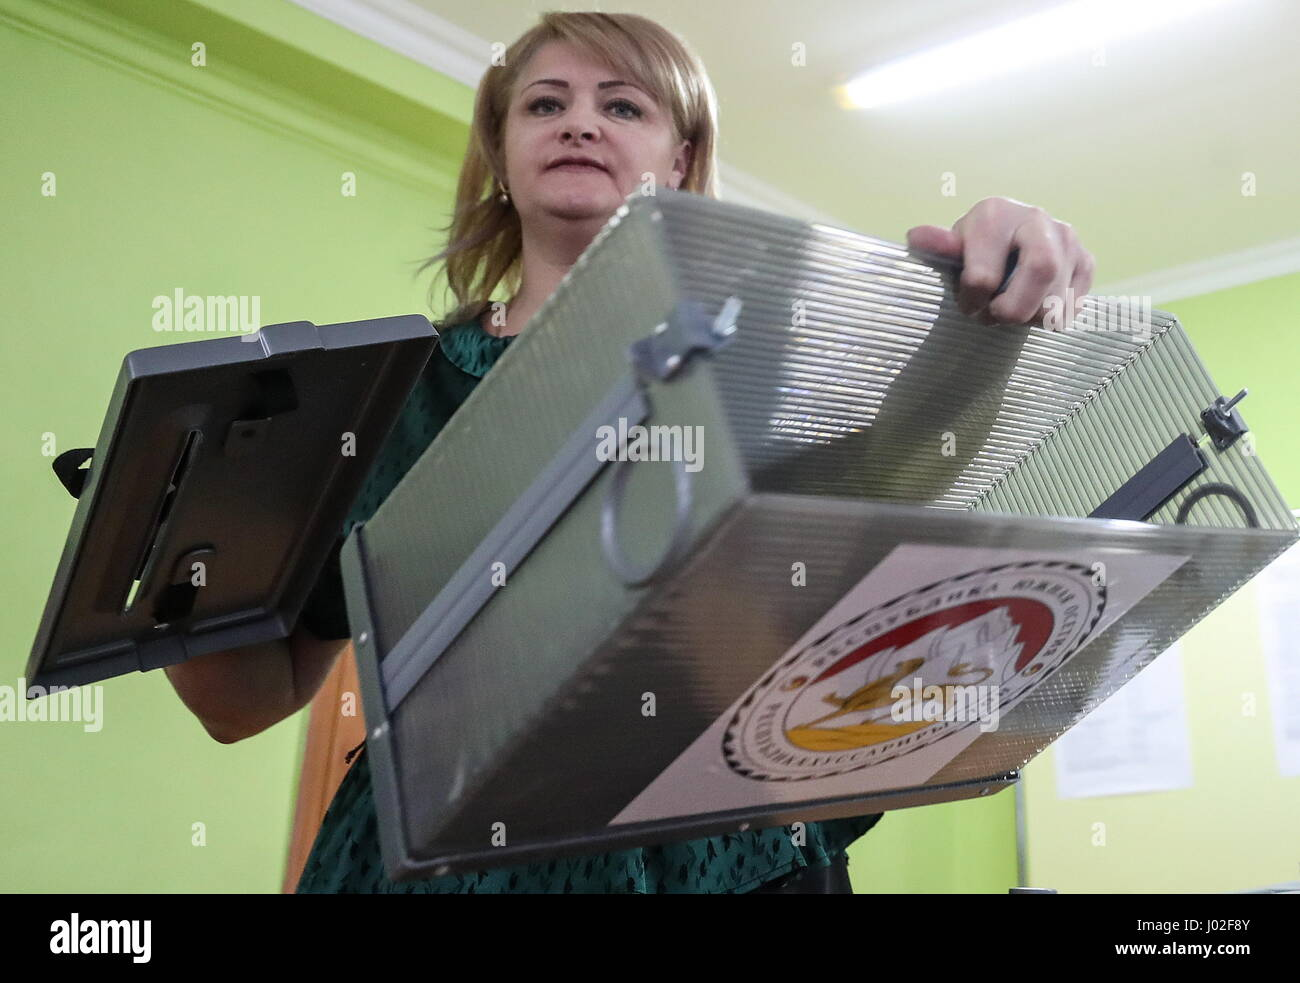 Tskhinval, South Ossetia. 9th Apr, 2017. An Election Commission member shows an empty ballot box ahead of the 2017 - Stock Image